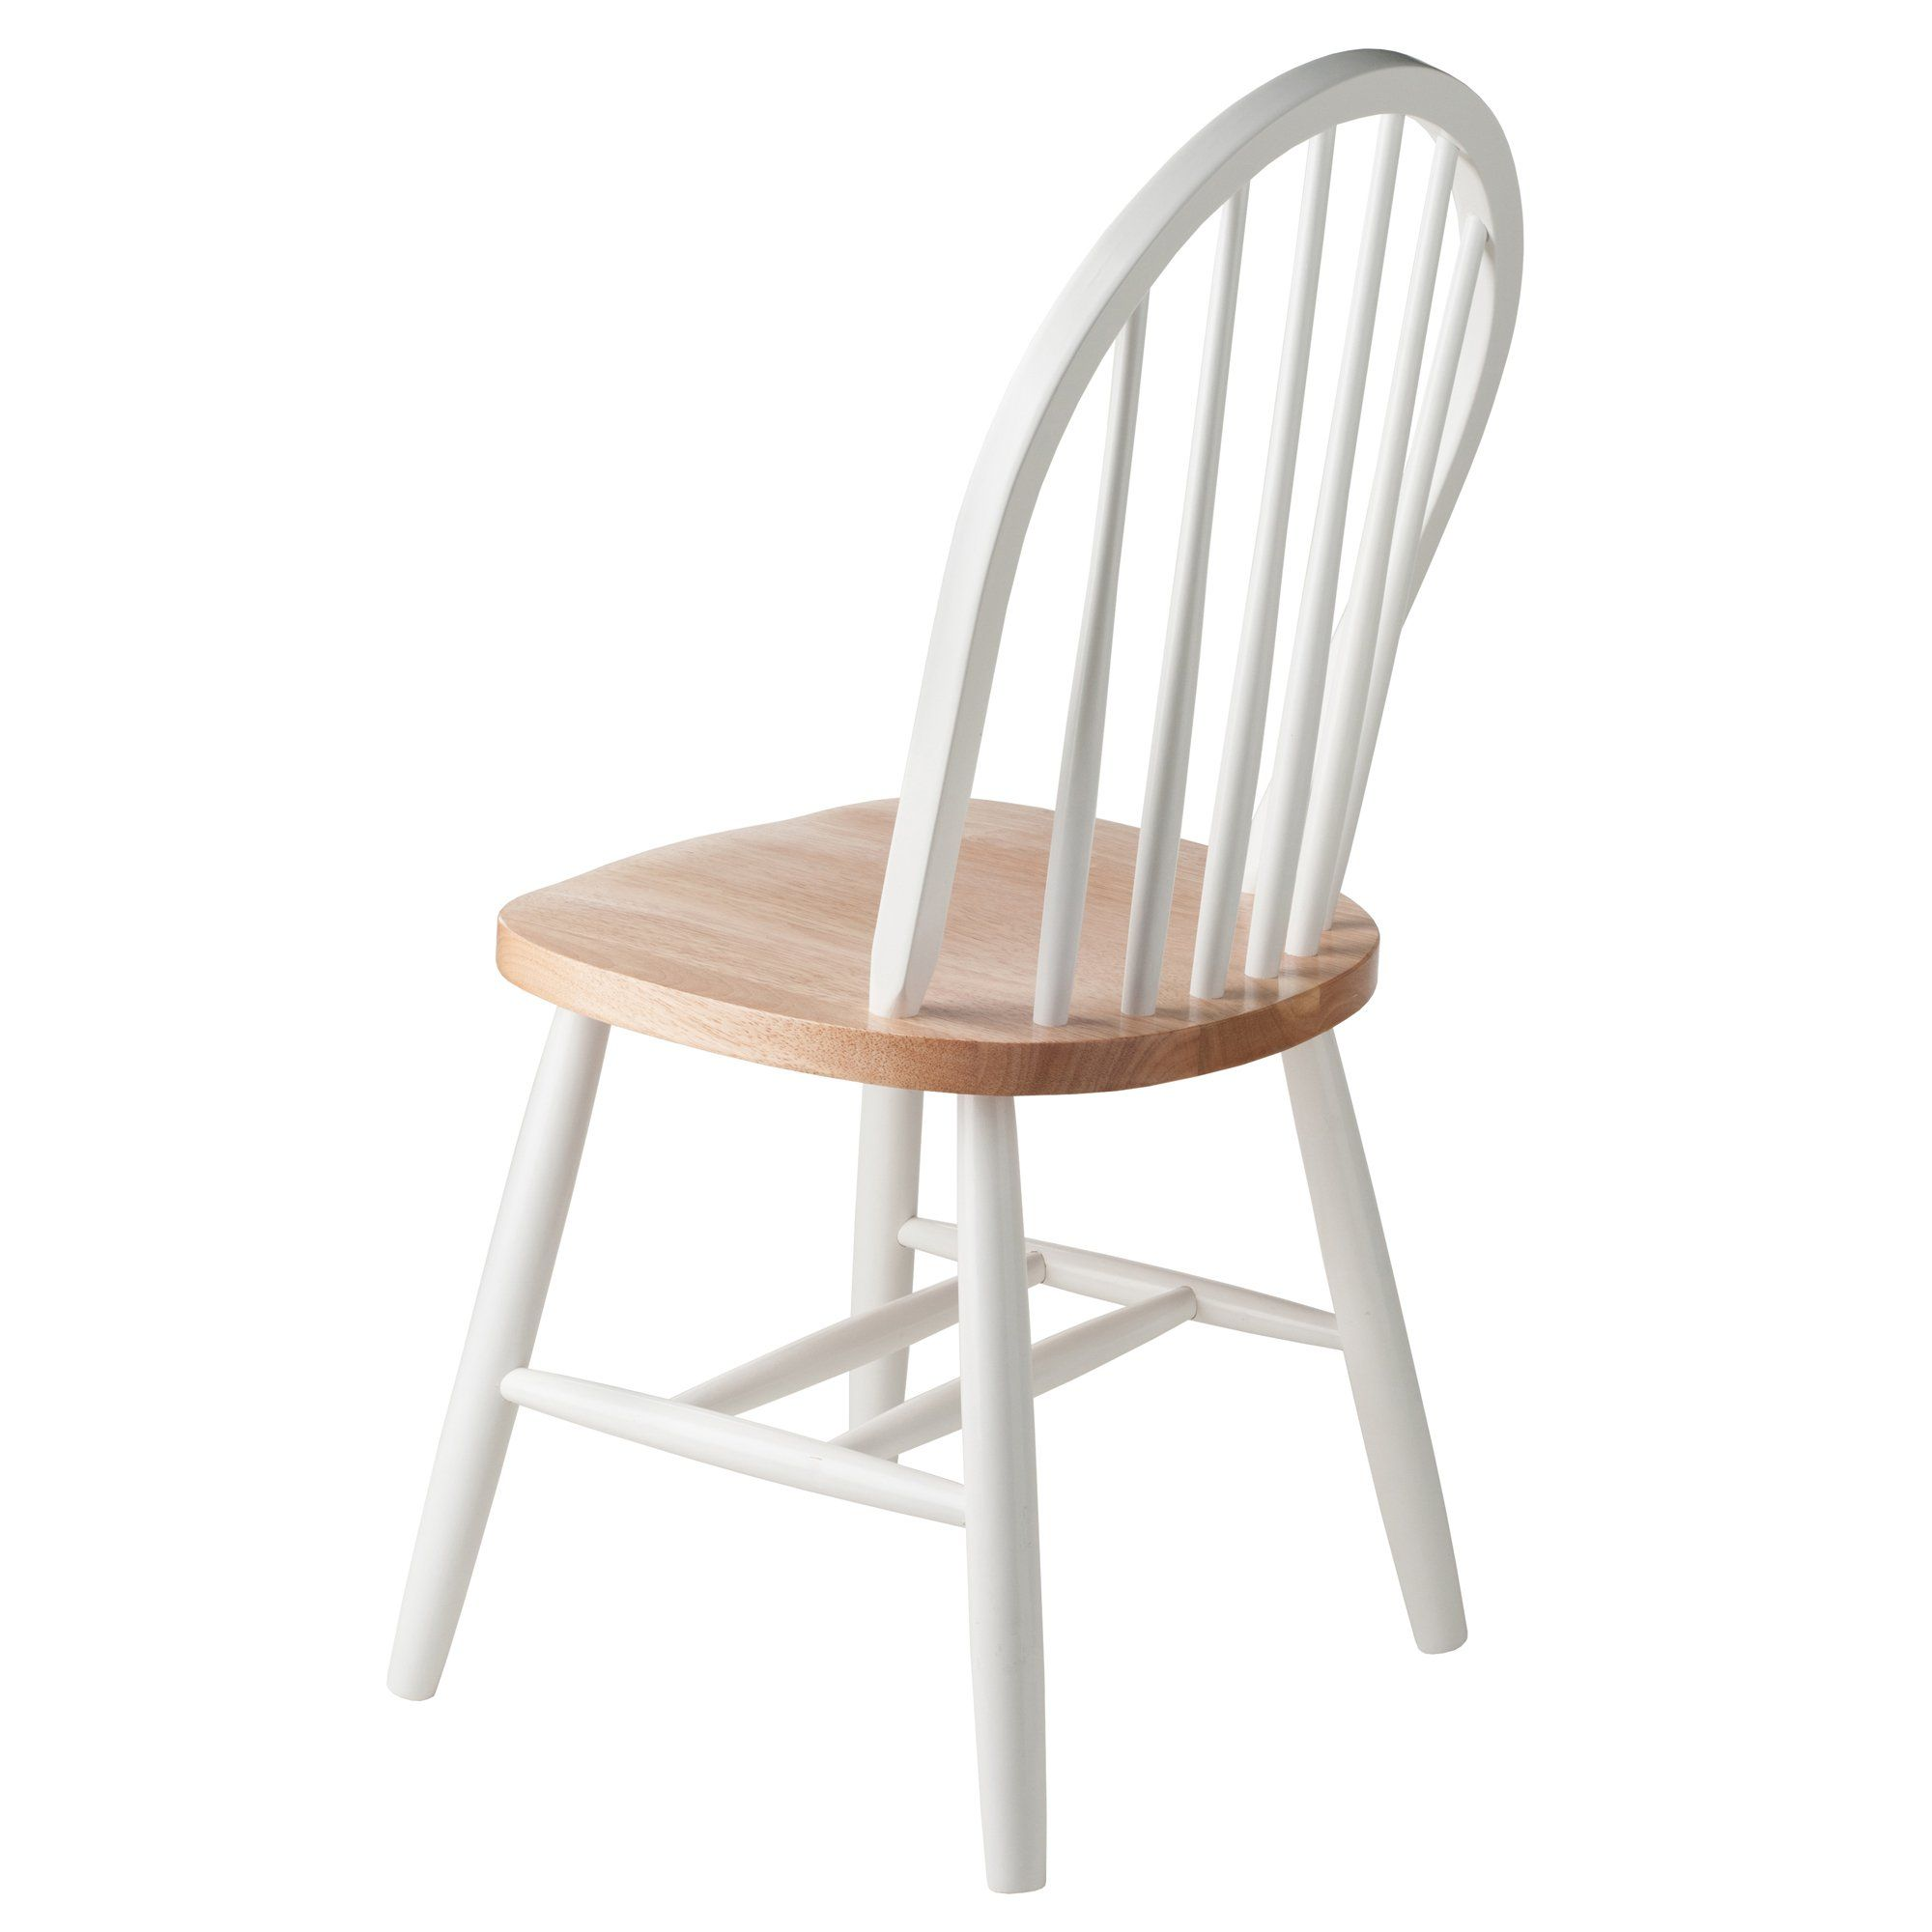 Winsome Wood Windsor Chair In Natural And White Finish Set Of 2 Click Image For More Details It Is An Affiliate Link To Kitchenremodeling